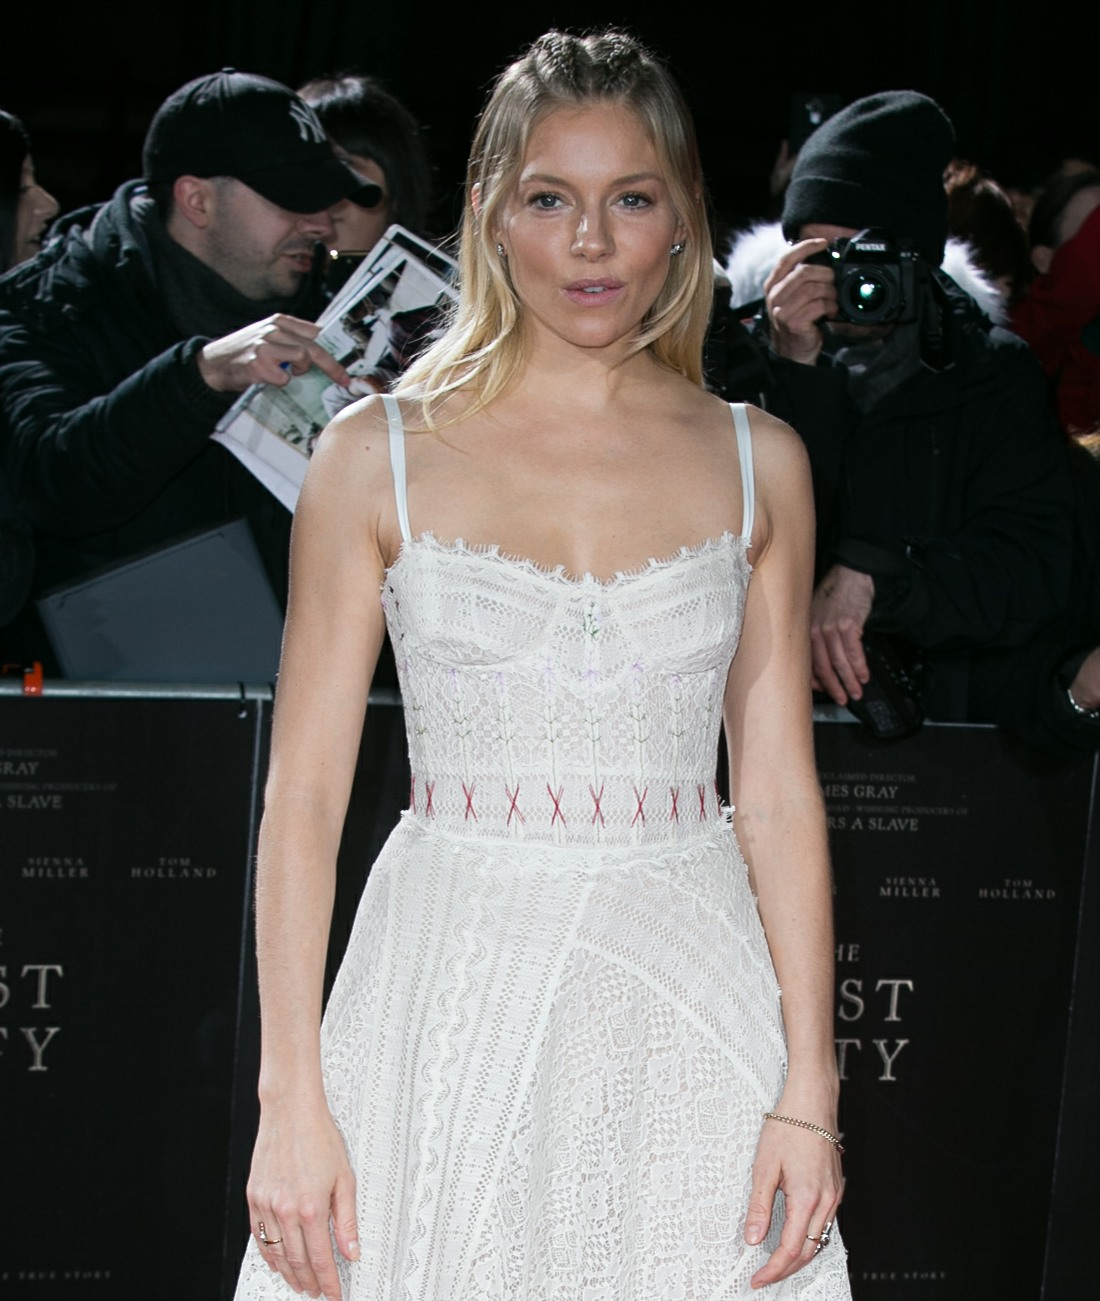 The European Premiere of 'Lost City of Z' held at the British Museum - Arrivals